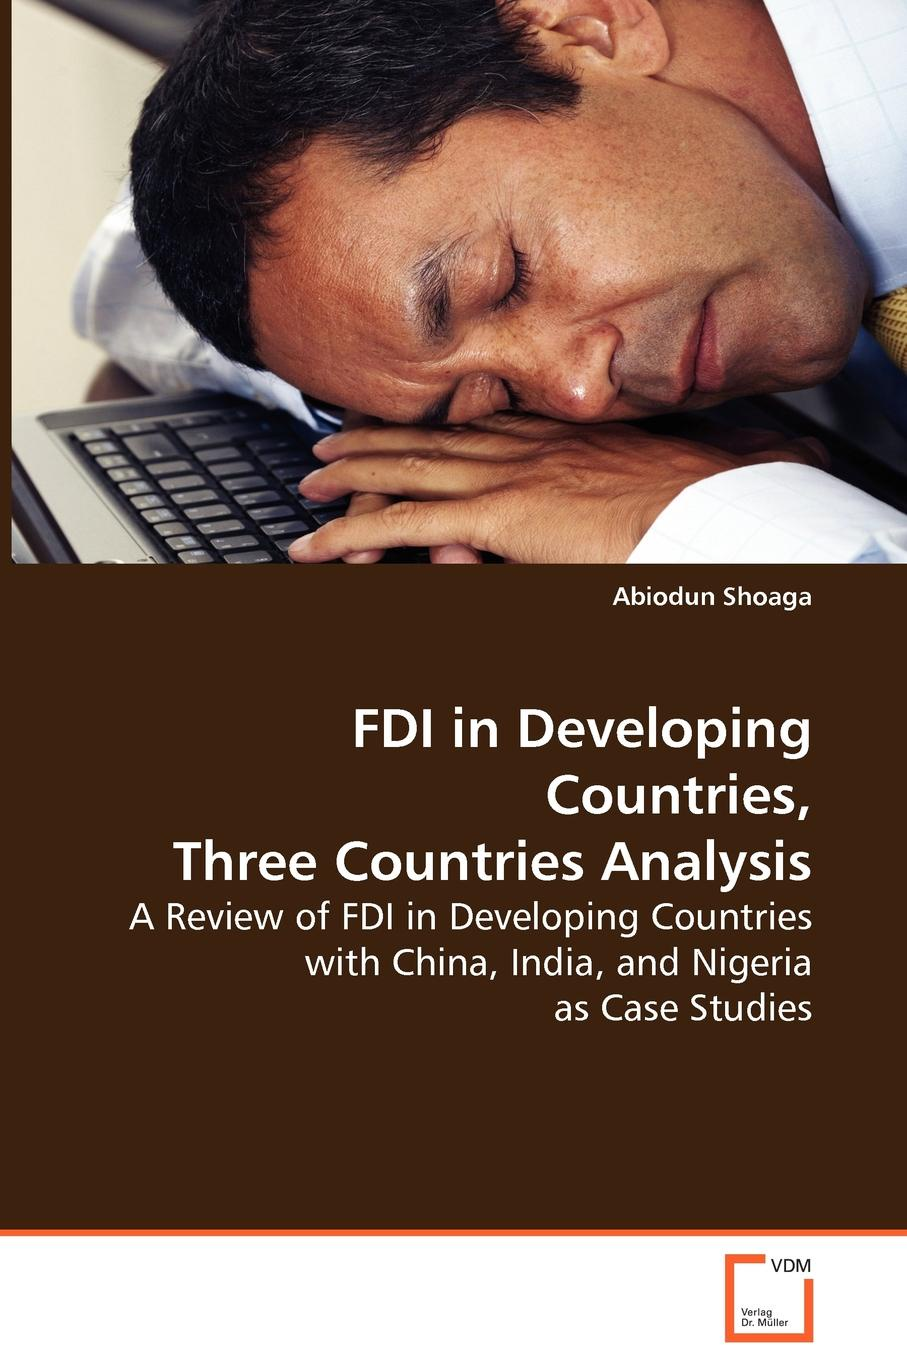 Abiodun Shoaga FDI in Developing Countries, Three Countries Analysis optimal health strategy in poorest developing countries